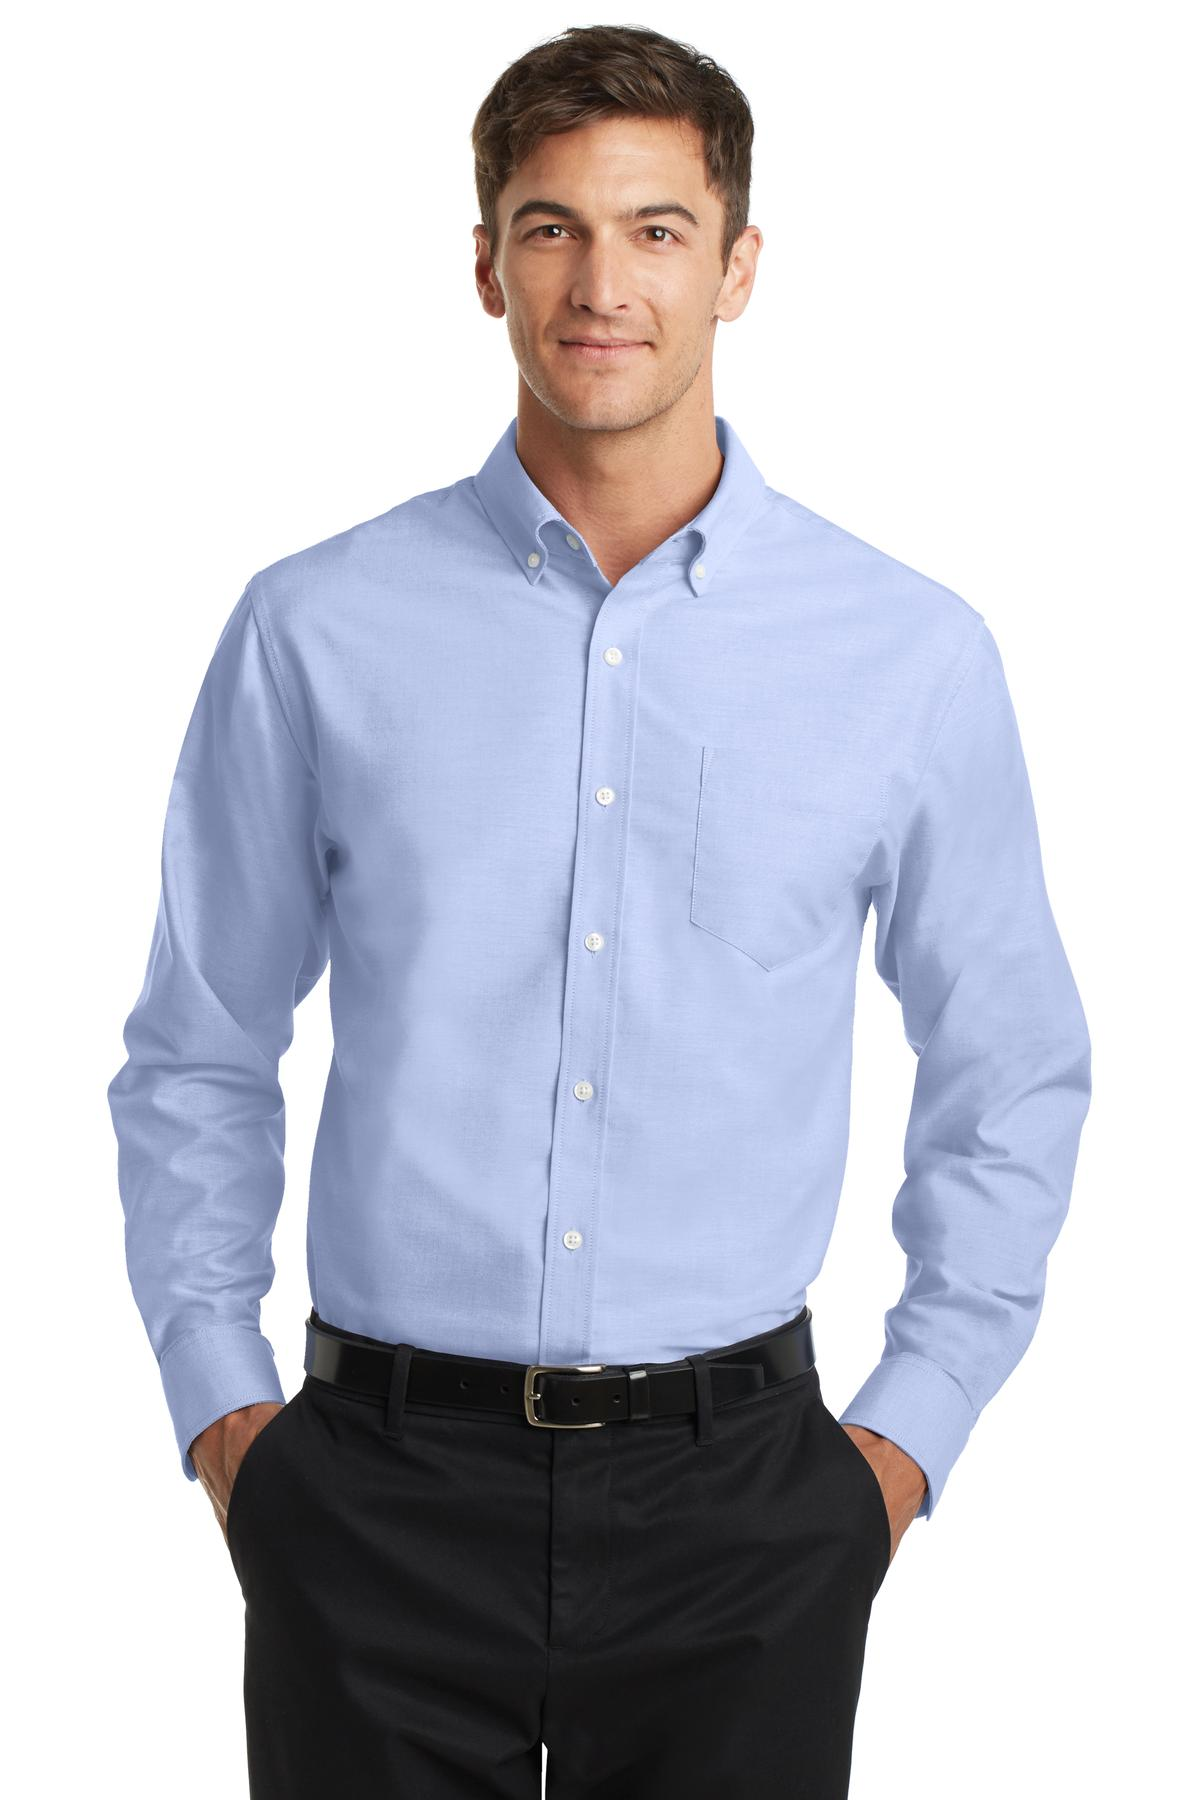 oxford shirt s658-oxford blue mafjfok